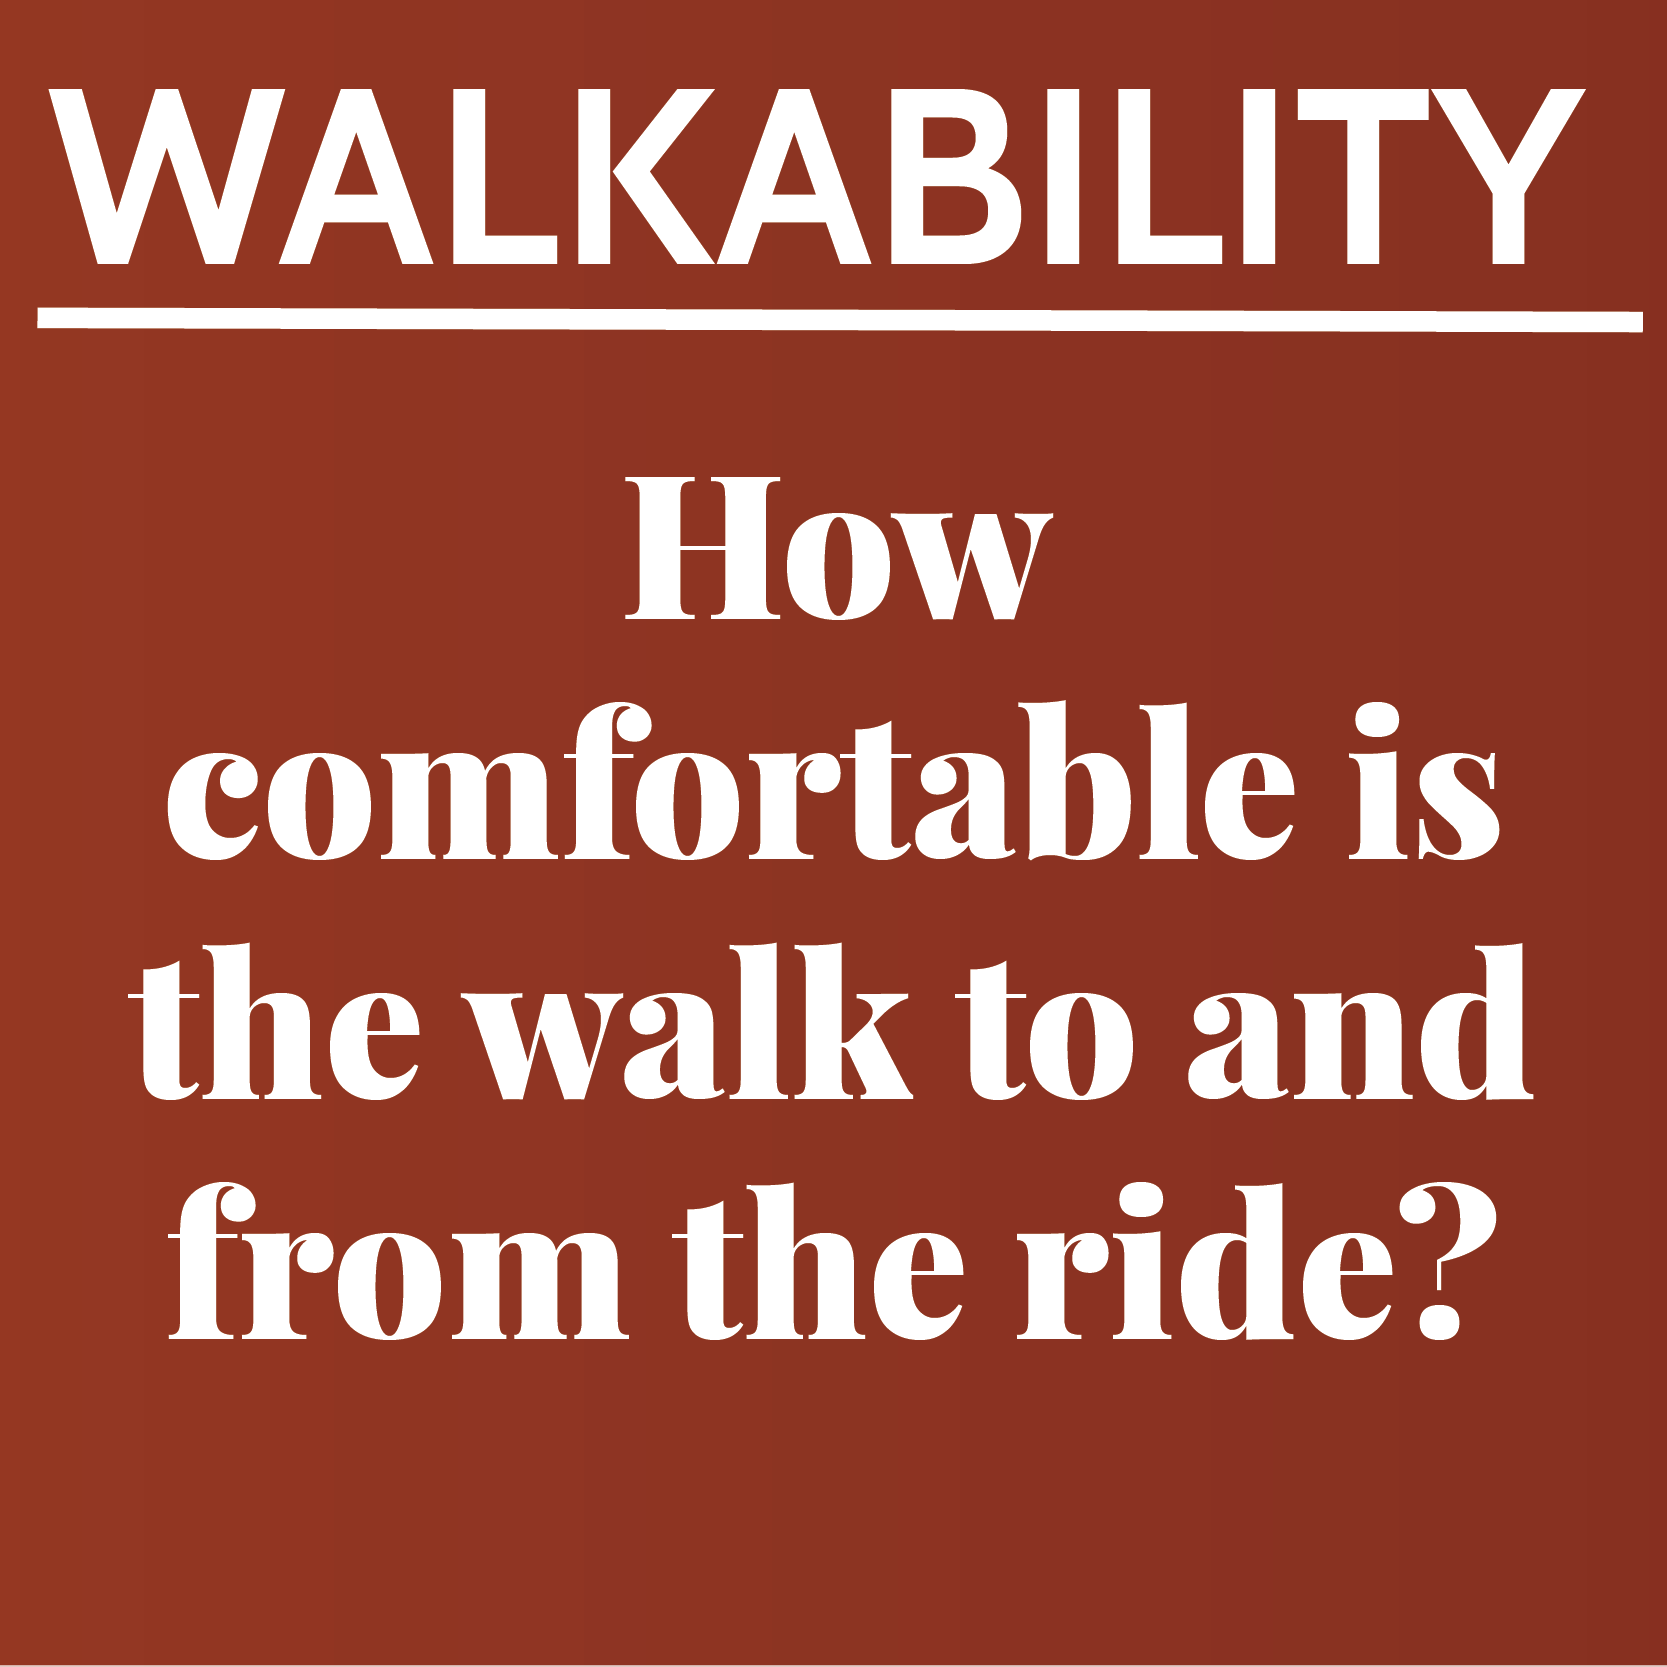 NEW SQUARE WALKABILITY-01-01.png